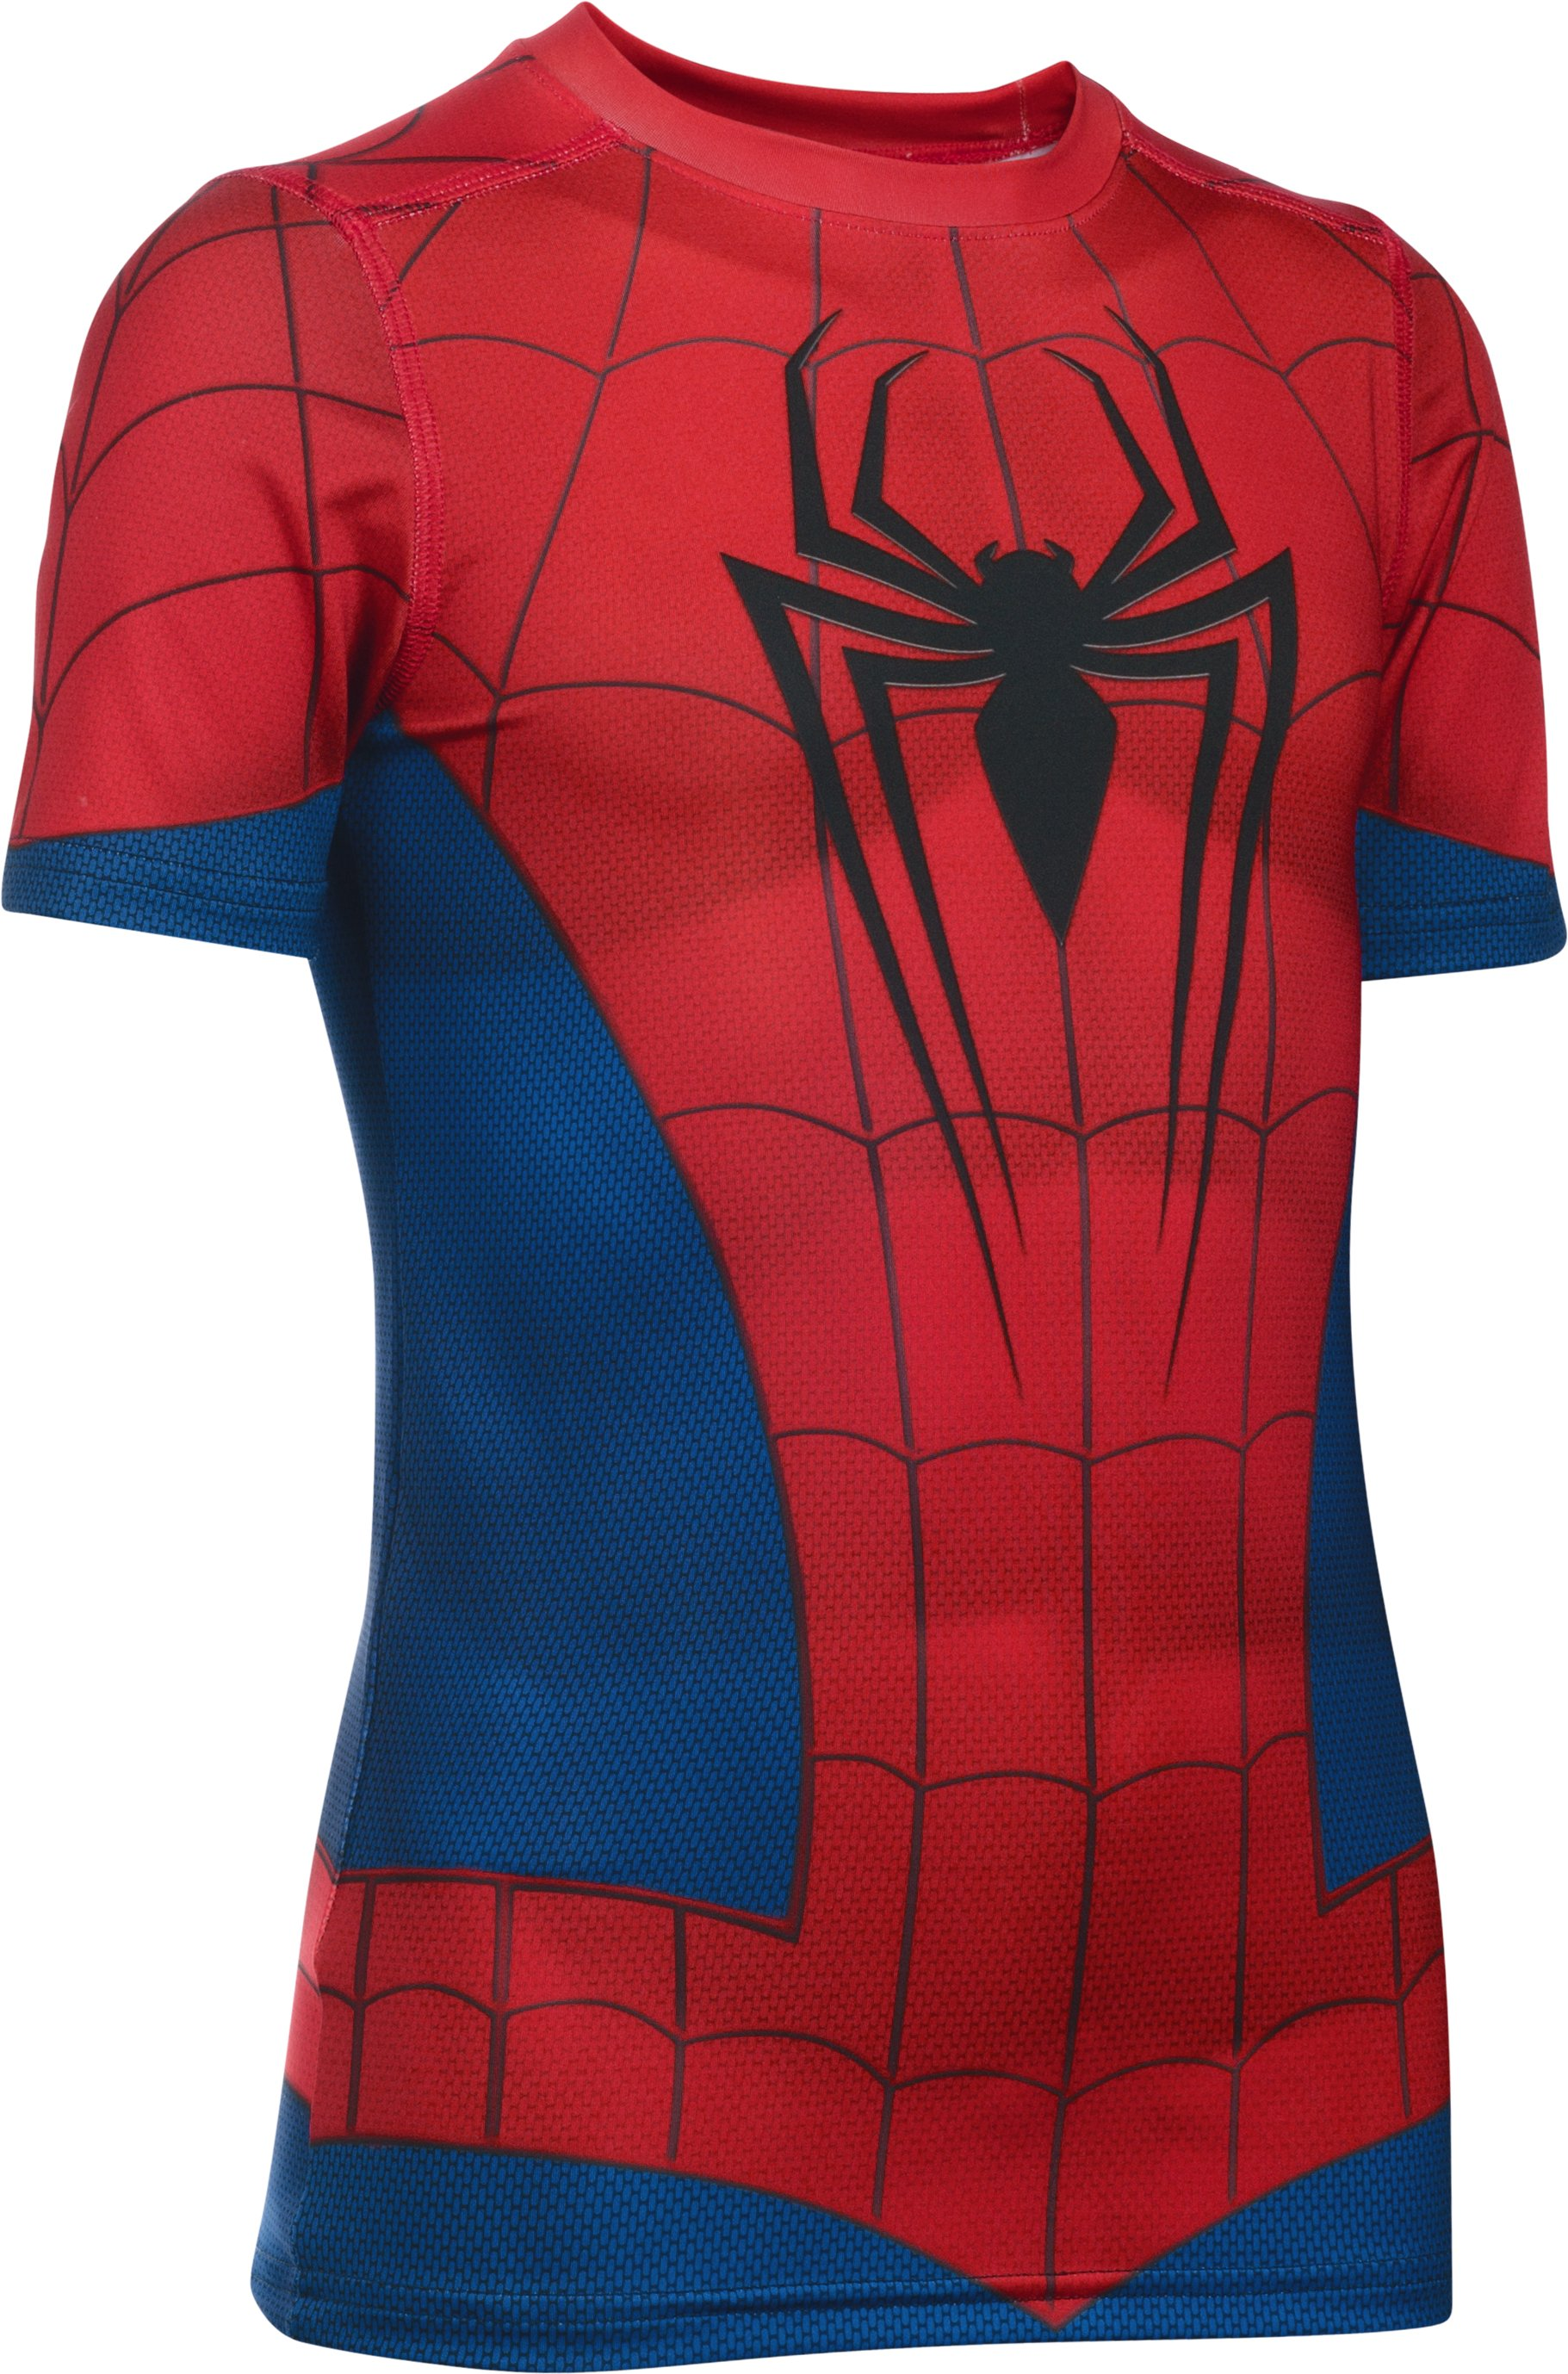 youth medium shirts Boys' Under Armour® Alter Ego Spider-Man Fitted Shirt I'm 6 feet with a 40 inch chest and 30 inch waste, so I thought I would try ordering the largest boys size, and it almost worked out except that the print didn't line up....It didn't fit right either, since it was a youth size; really supper baggy around the waste and pretty stretched across the chest....What I mean is that the print is shaded to fit a smaller person, so the shading ended up across my chest, rather then below it _ it looked really funny.